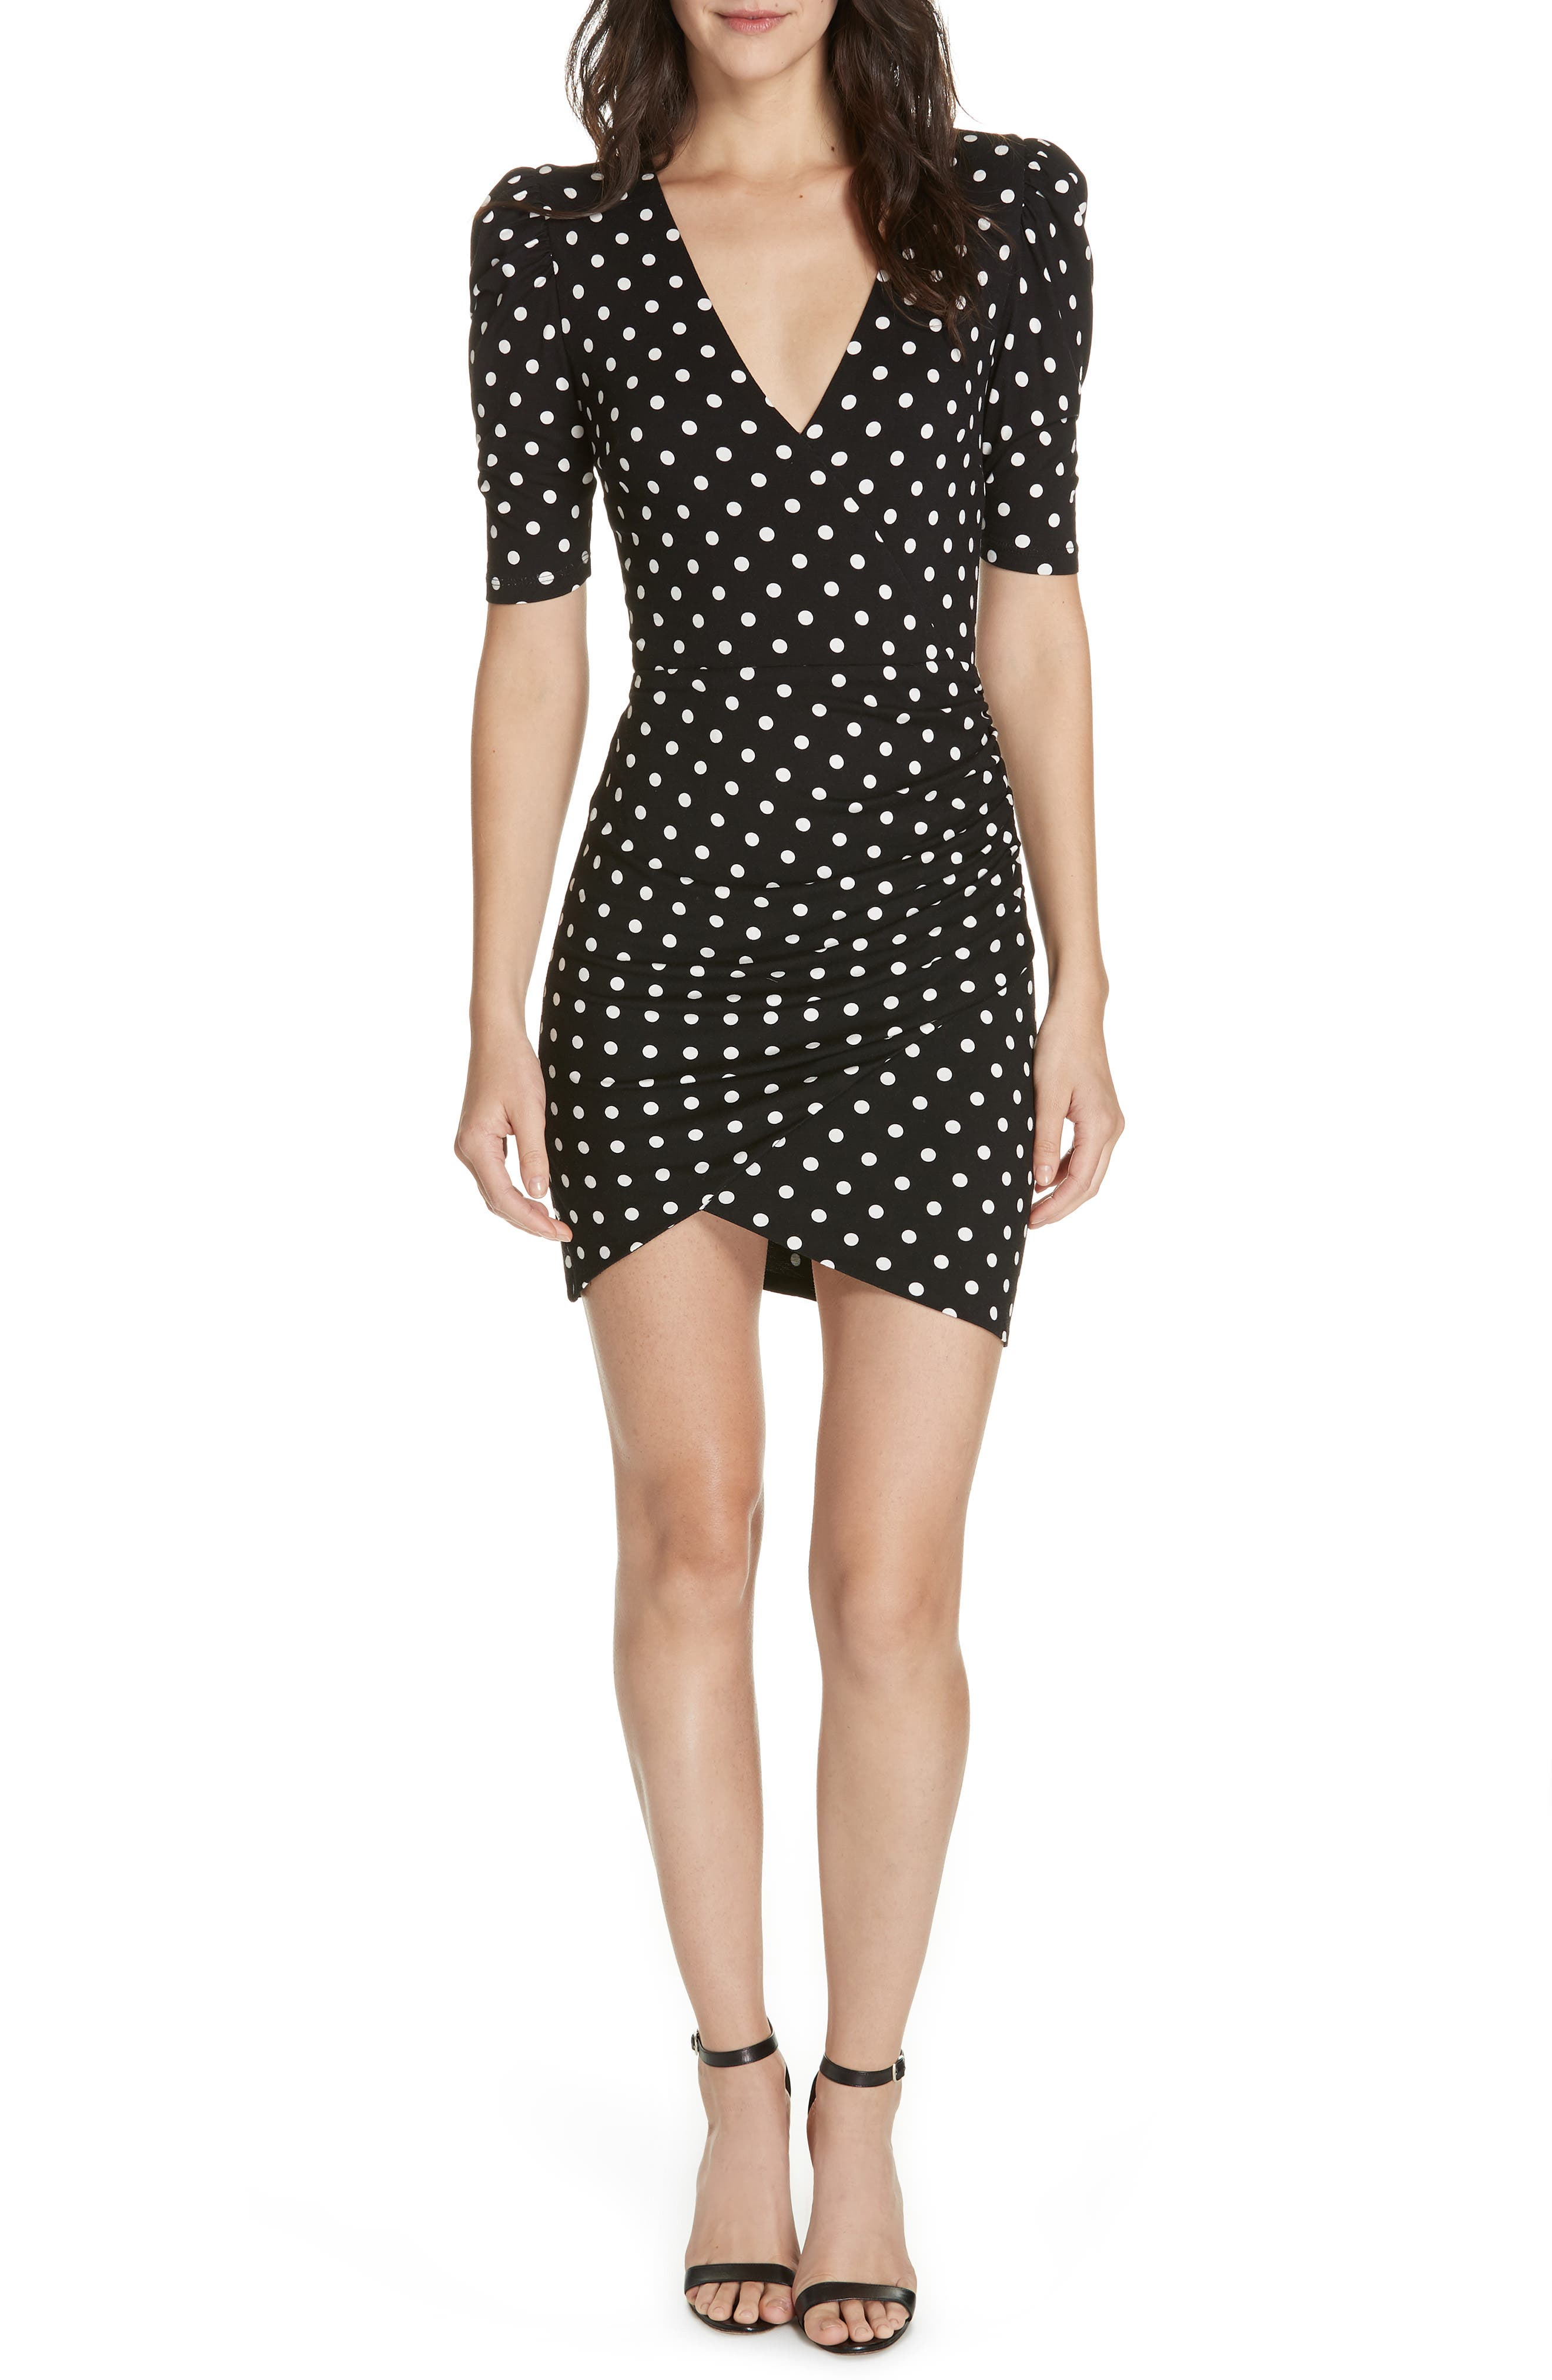 ALICE + OLIVIA, Judy Ruched Faux Wrap Dress, Main thumbnail 1, color, 001